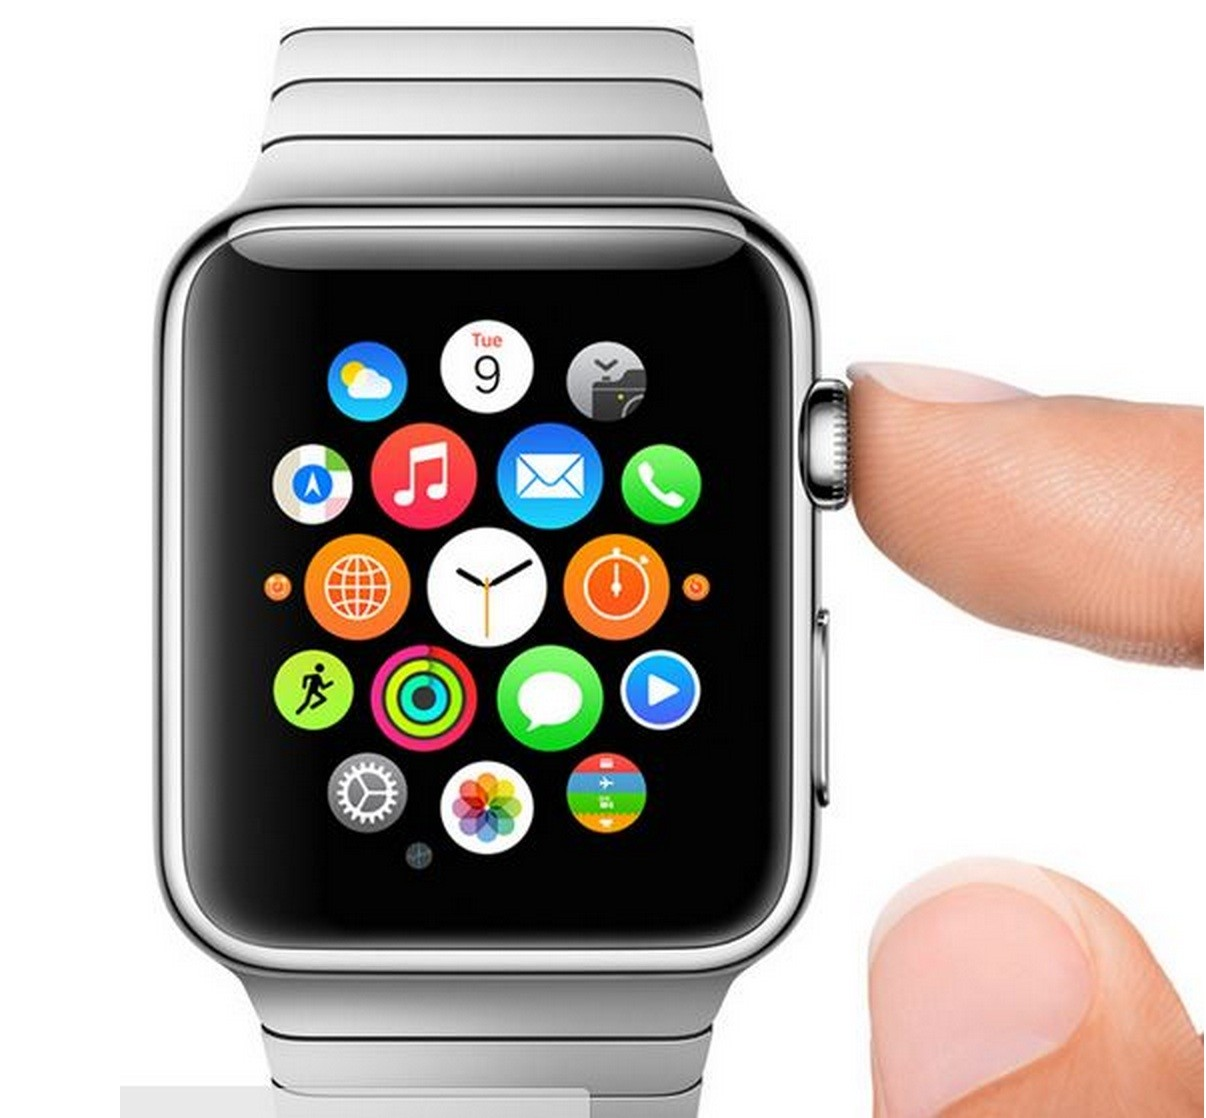 Apple Watch info on Cool Mom Tech